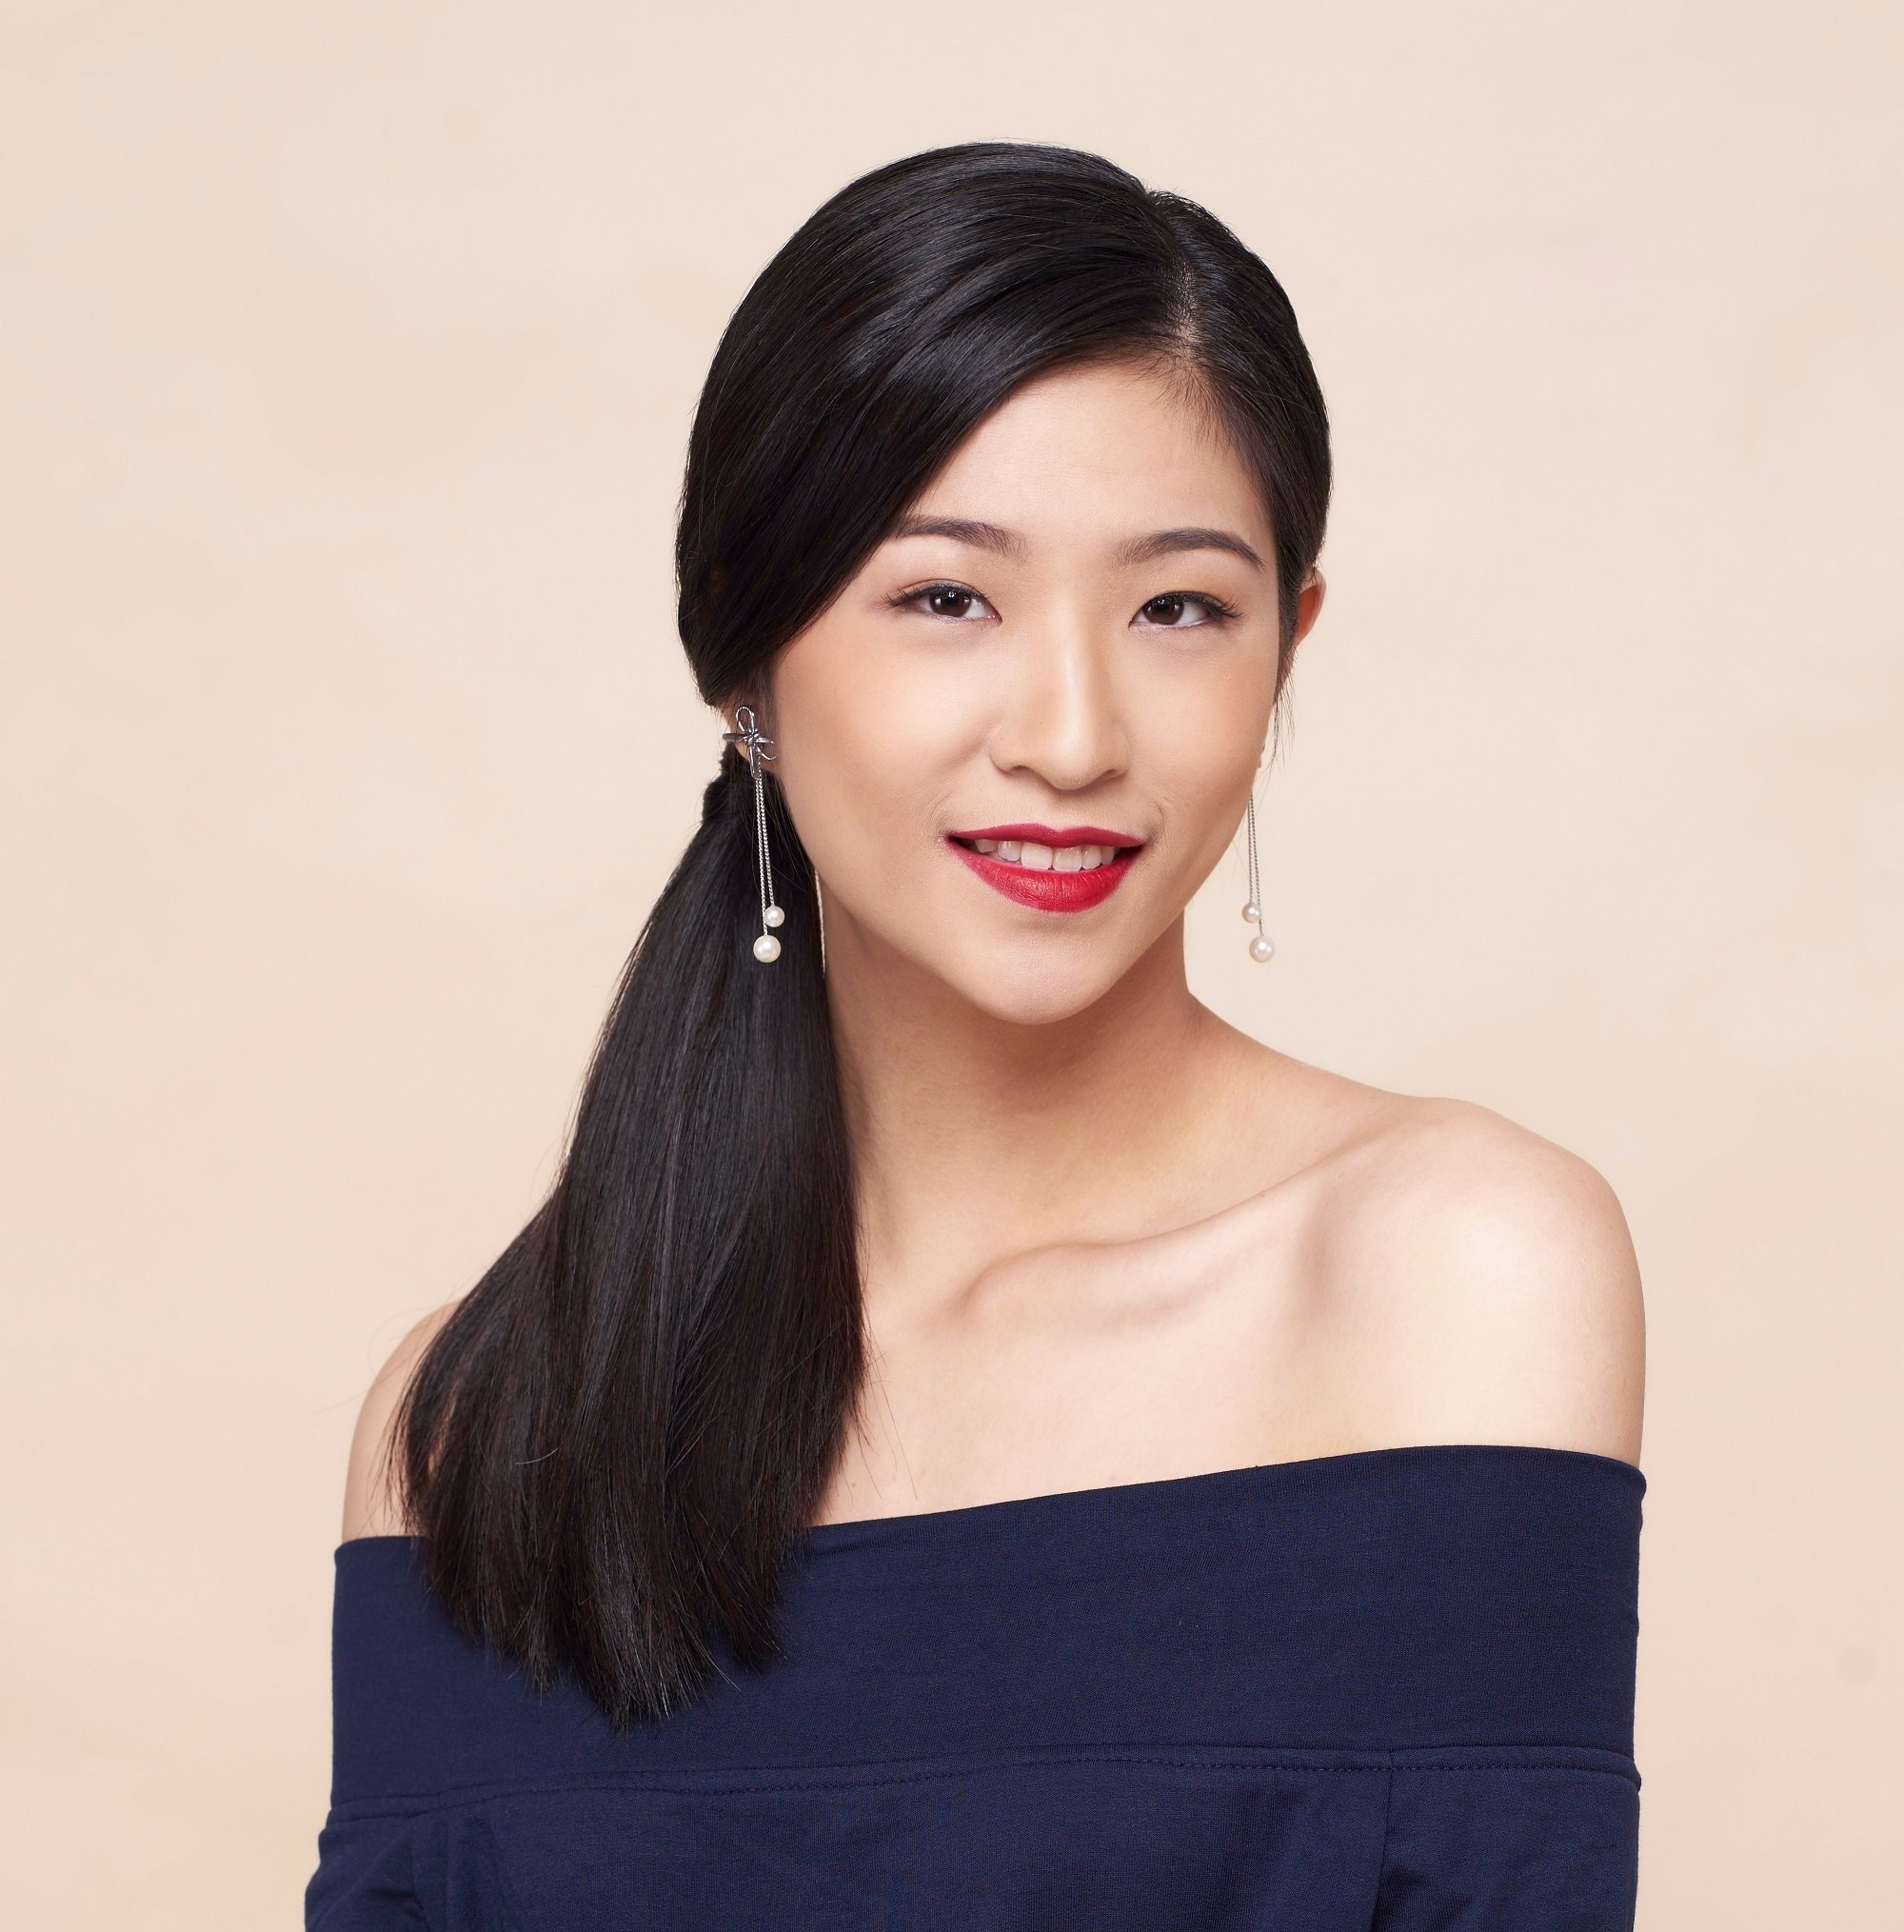 Christmas party hairstyles: Closeup shot of an Asian woman with long black hair in side ponytail wearing a dark blue off-shoulder blouse